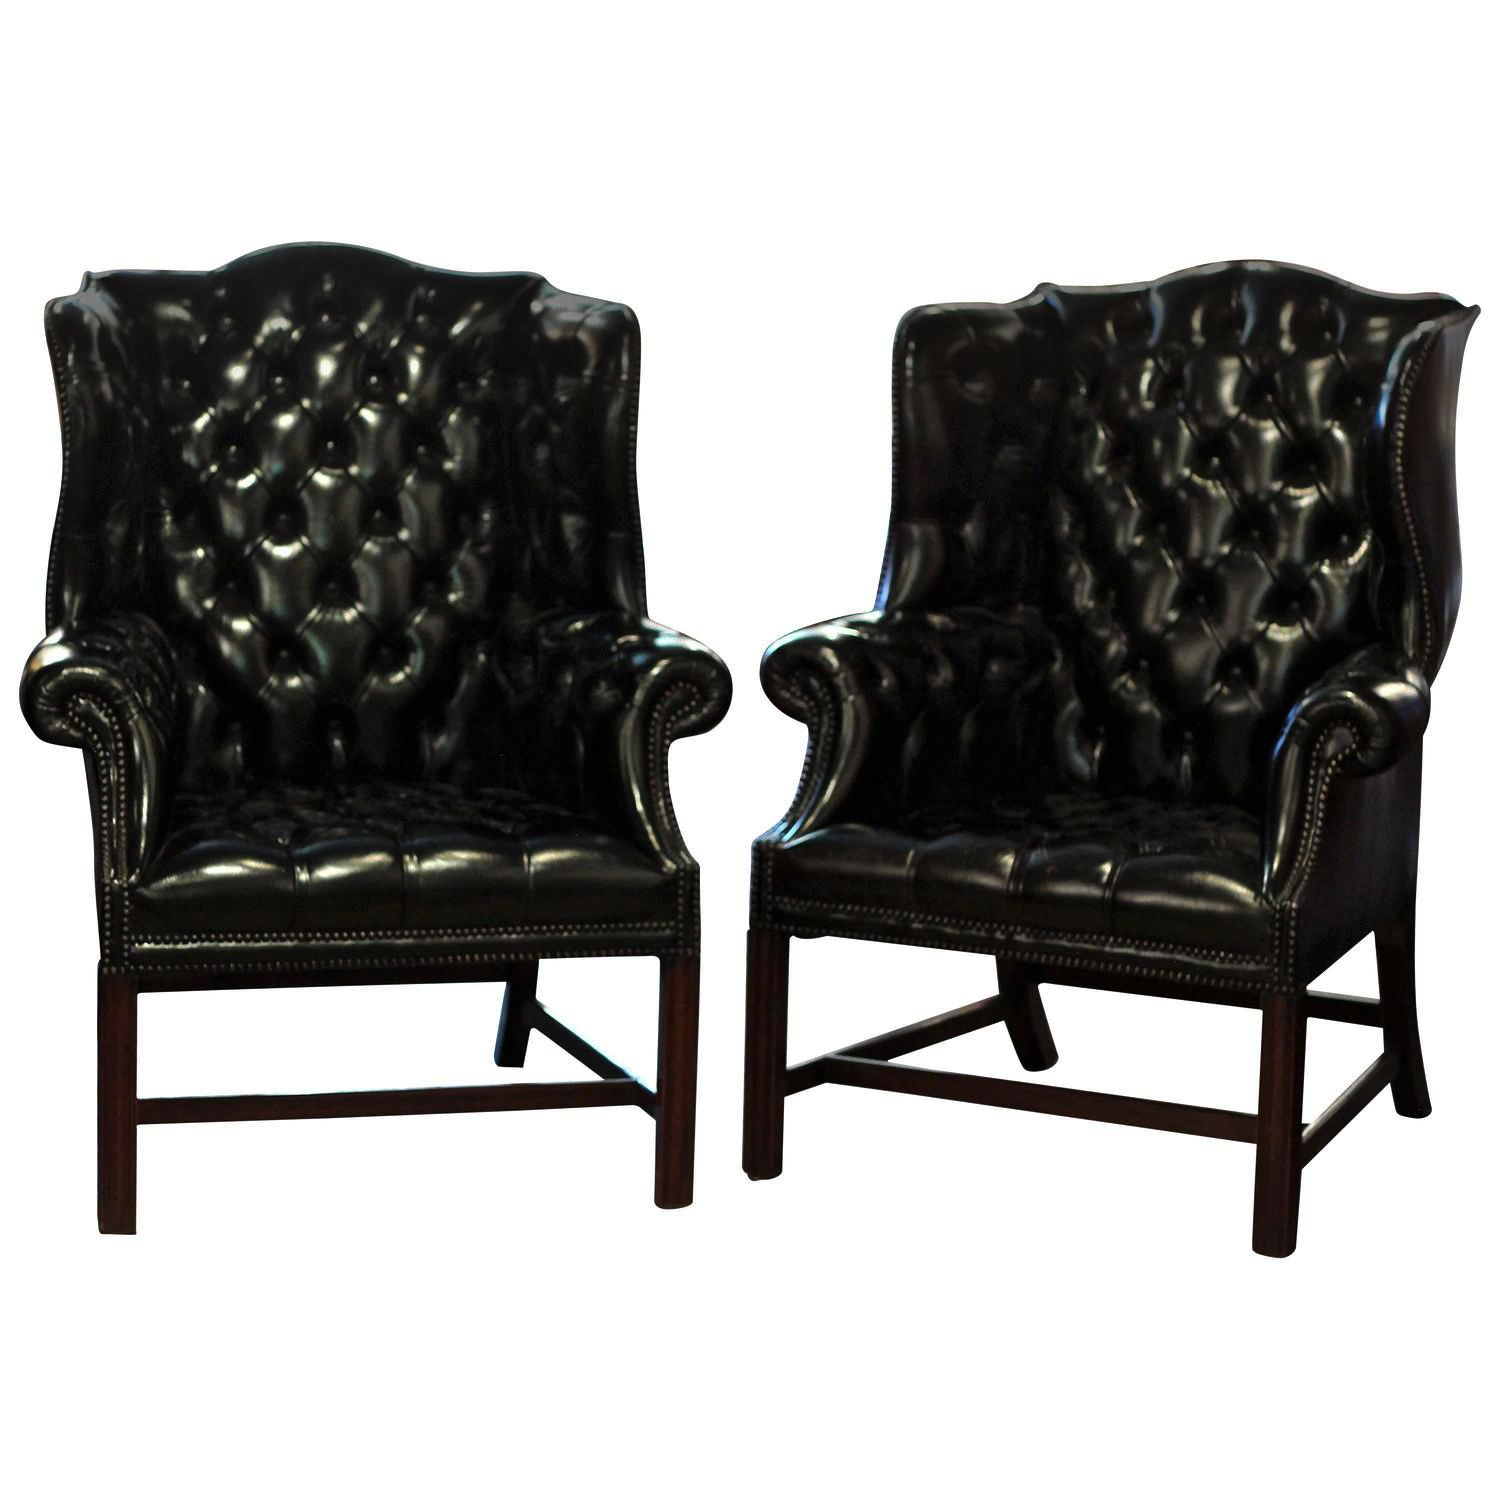 Black black tuffed buttoned wing back chairs leather